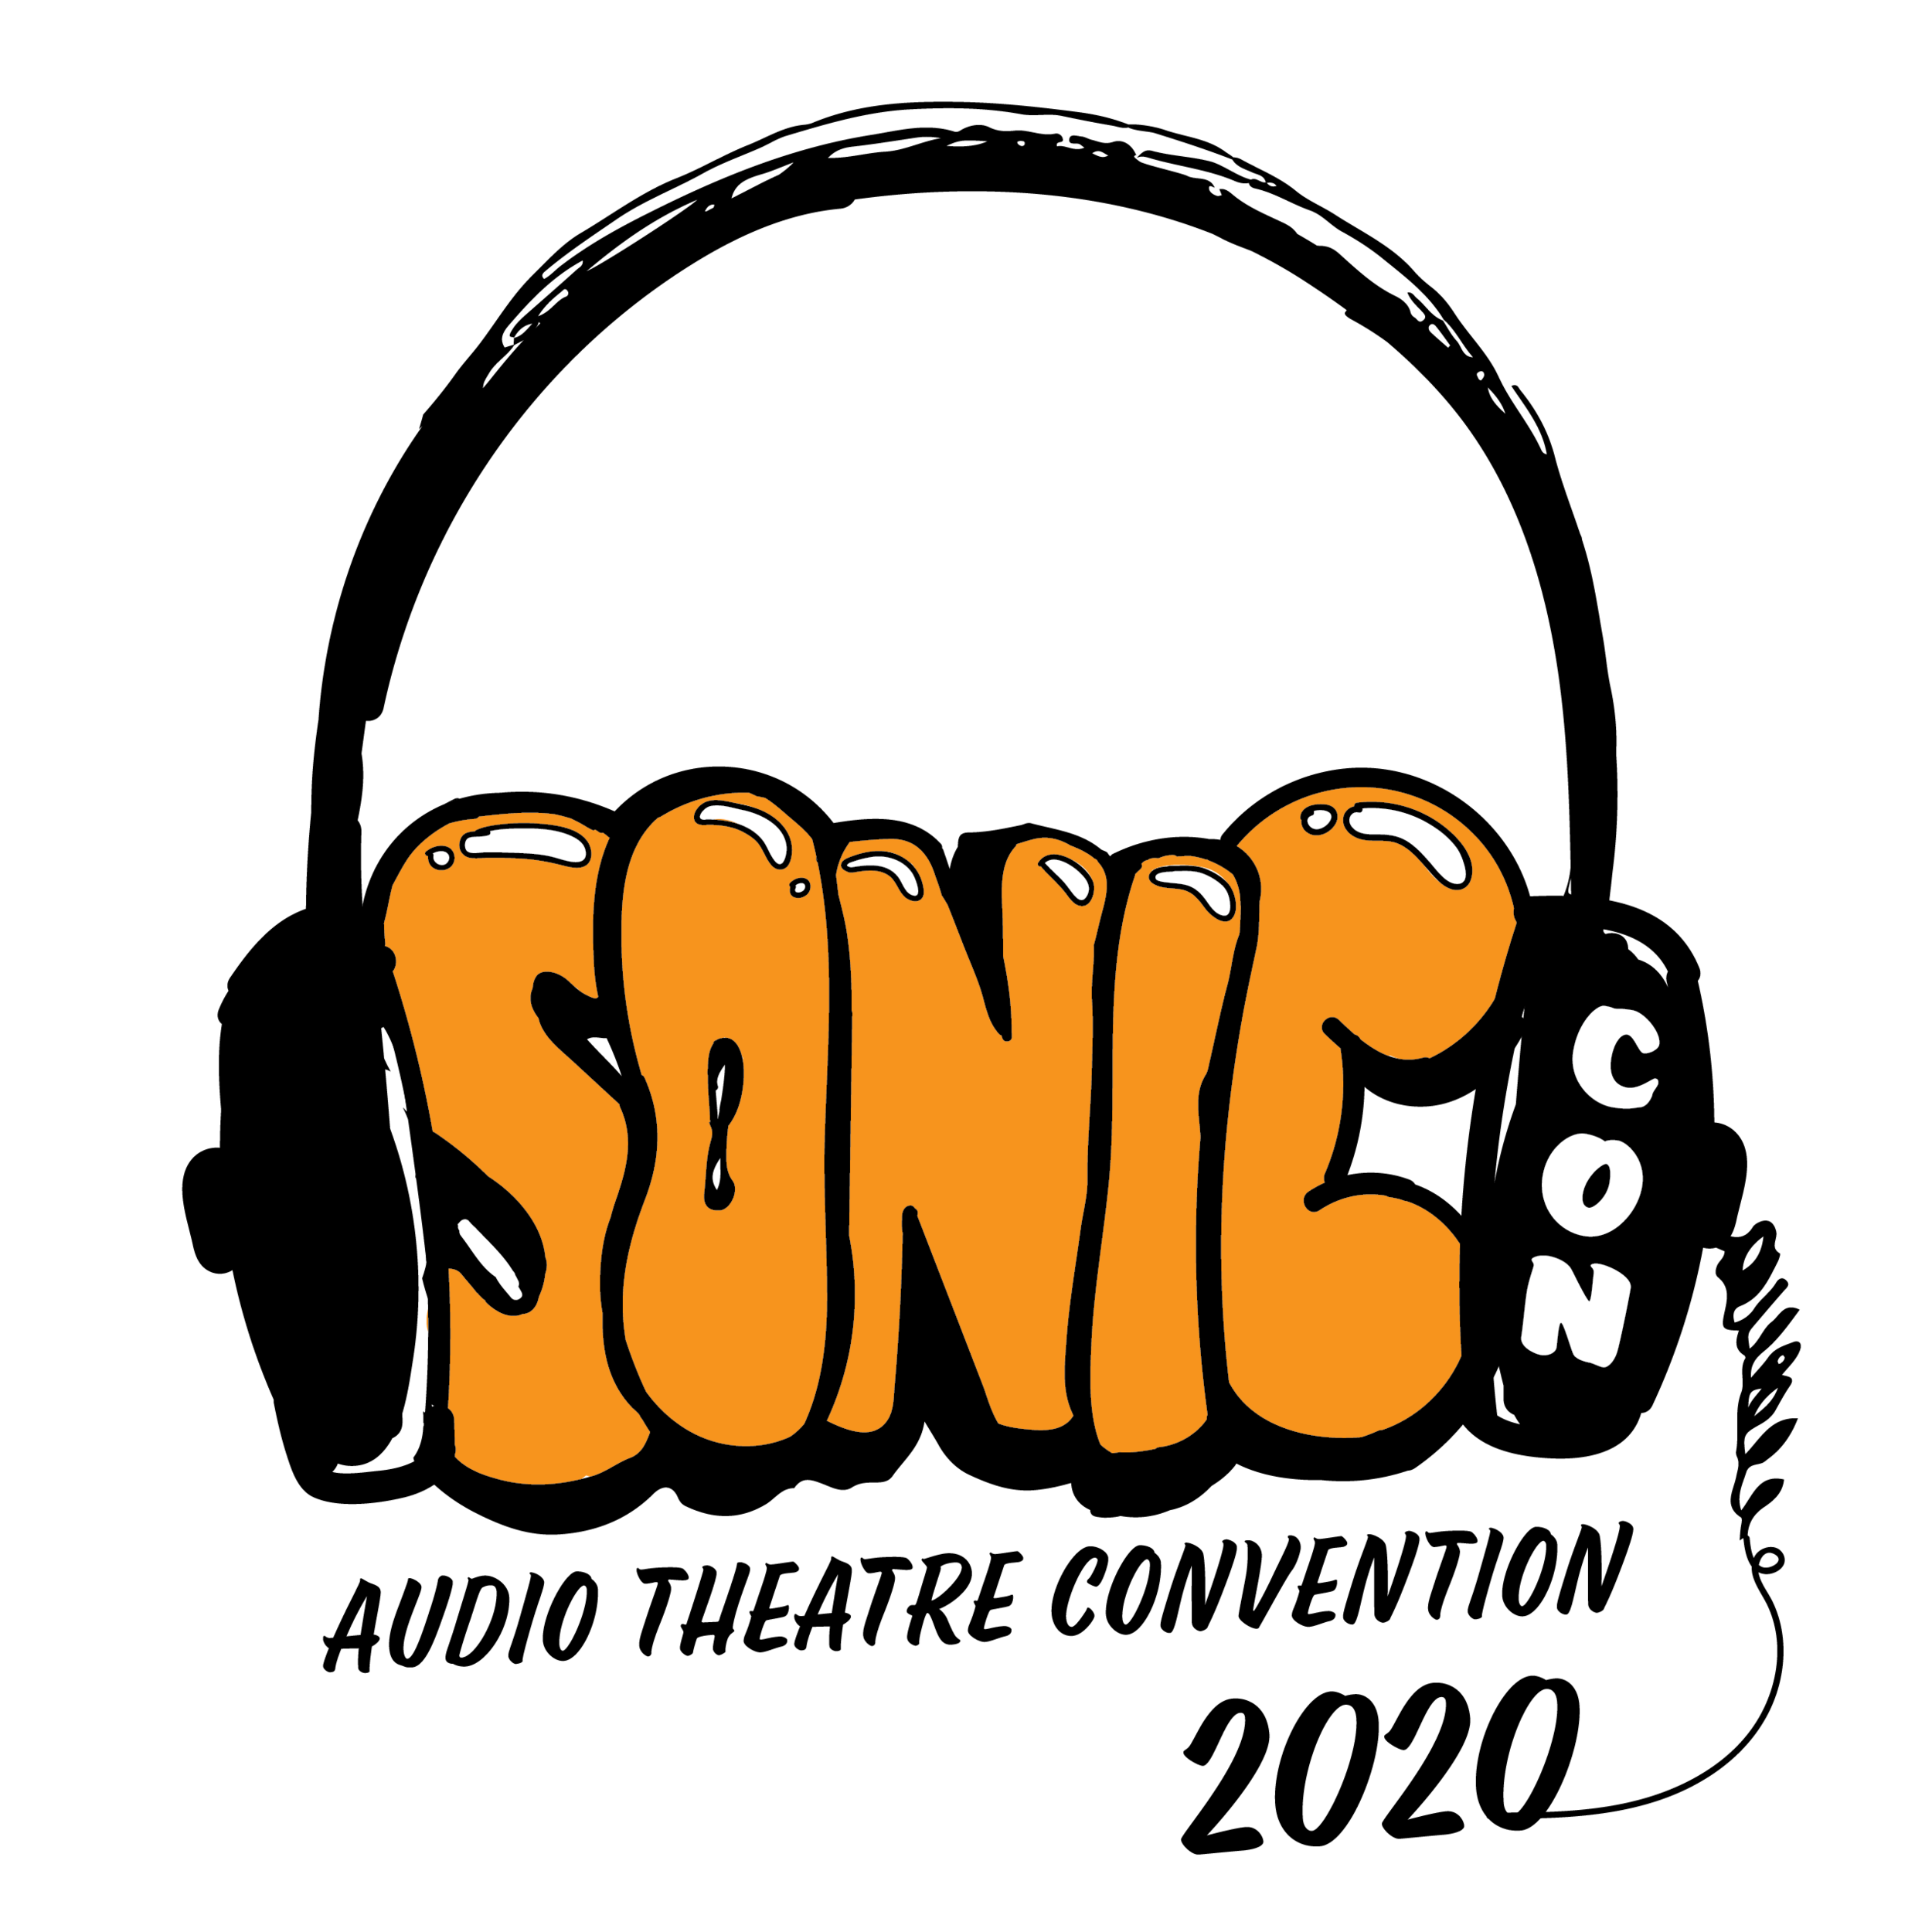 - Located on the campus of Liberty University in Lynchburg, VA, Sonic-Con is a unique, family-friendly experience designed for those who love all things audio.The weekend will feature industry professionals, interactive masterclasses, writing competitions, live radio dramas, and a platform for new works.Unlike other conventions Sonic-Con is not simply a meet-and-greet experience; it is a place to listen, engage, AND CREATE!